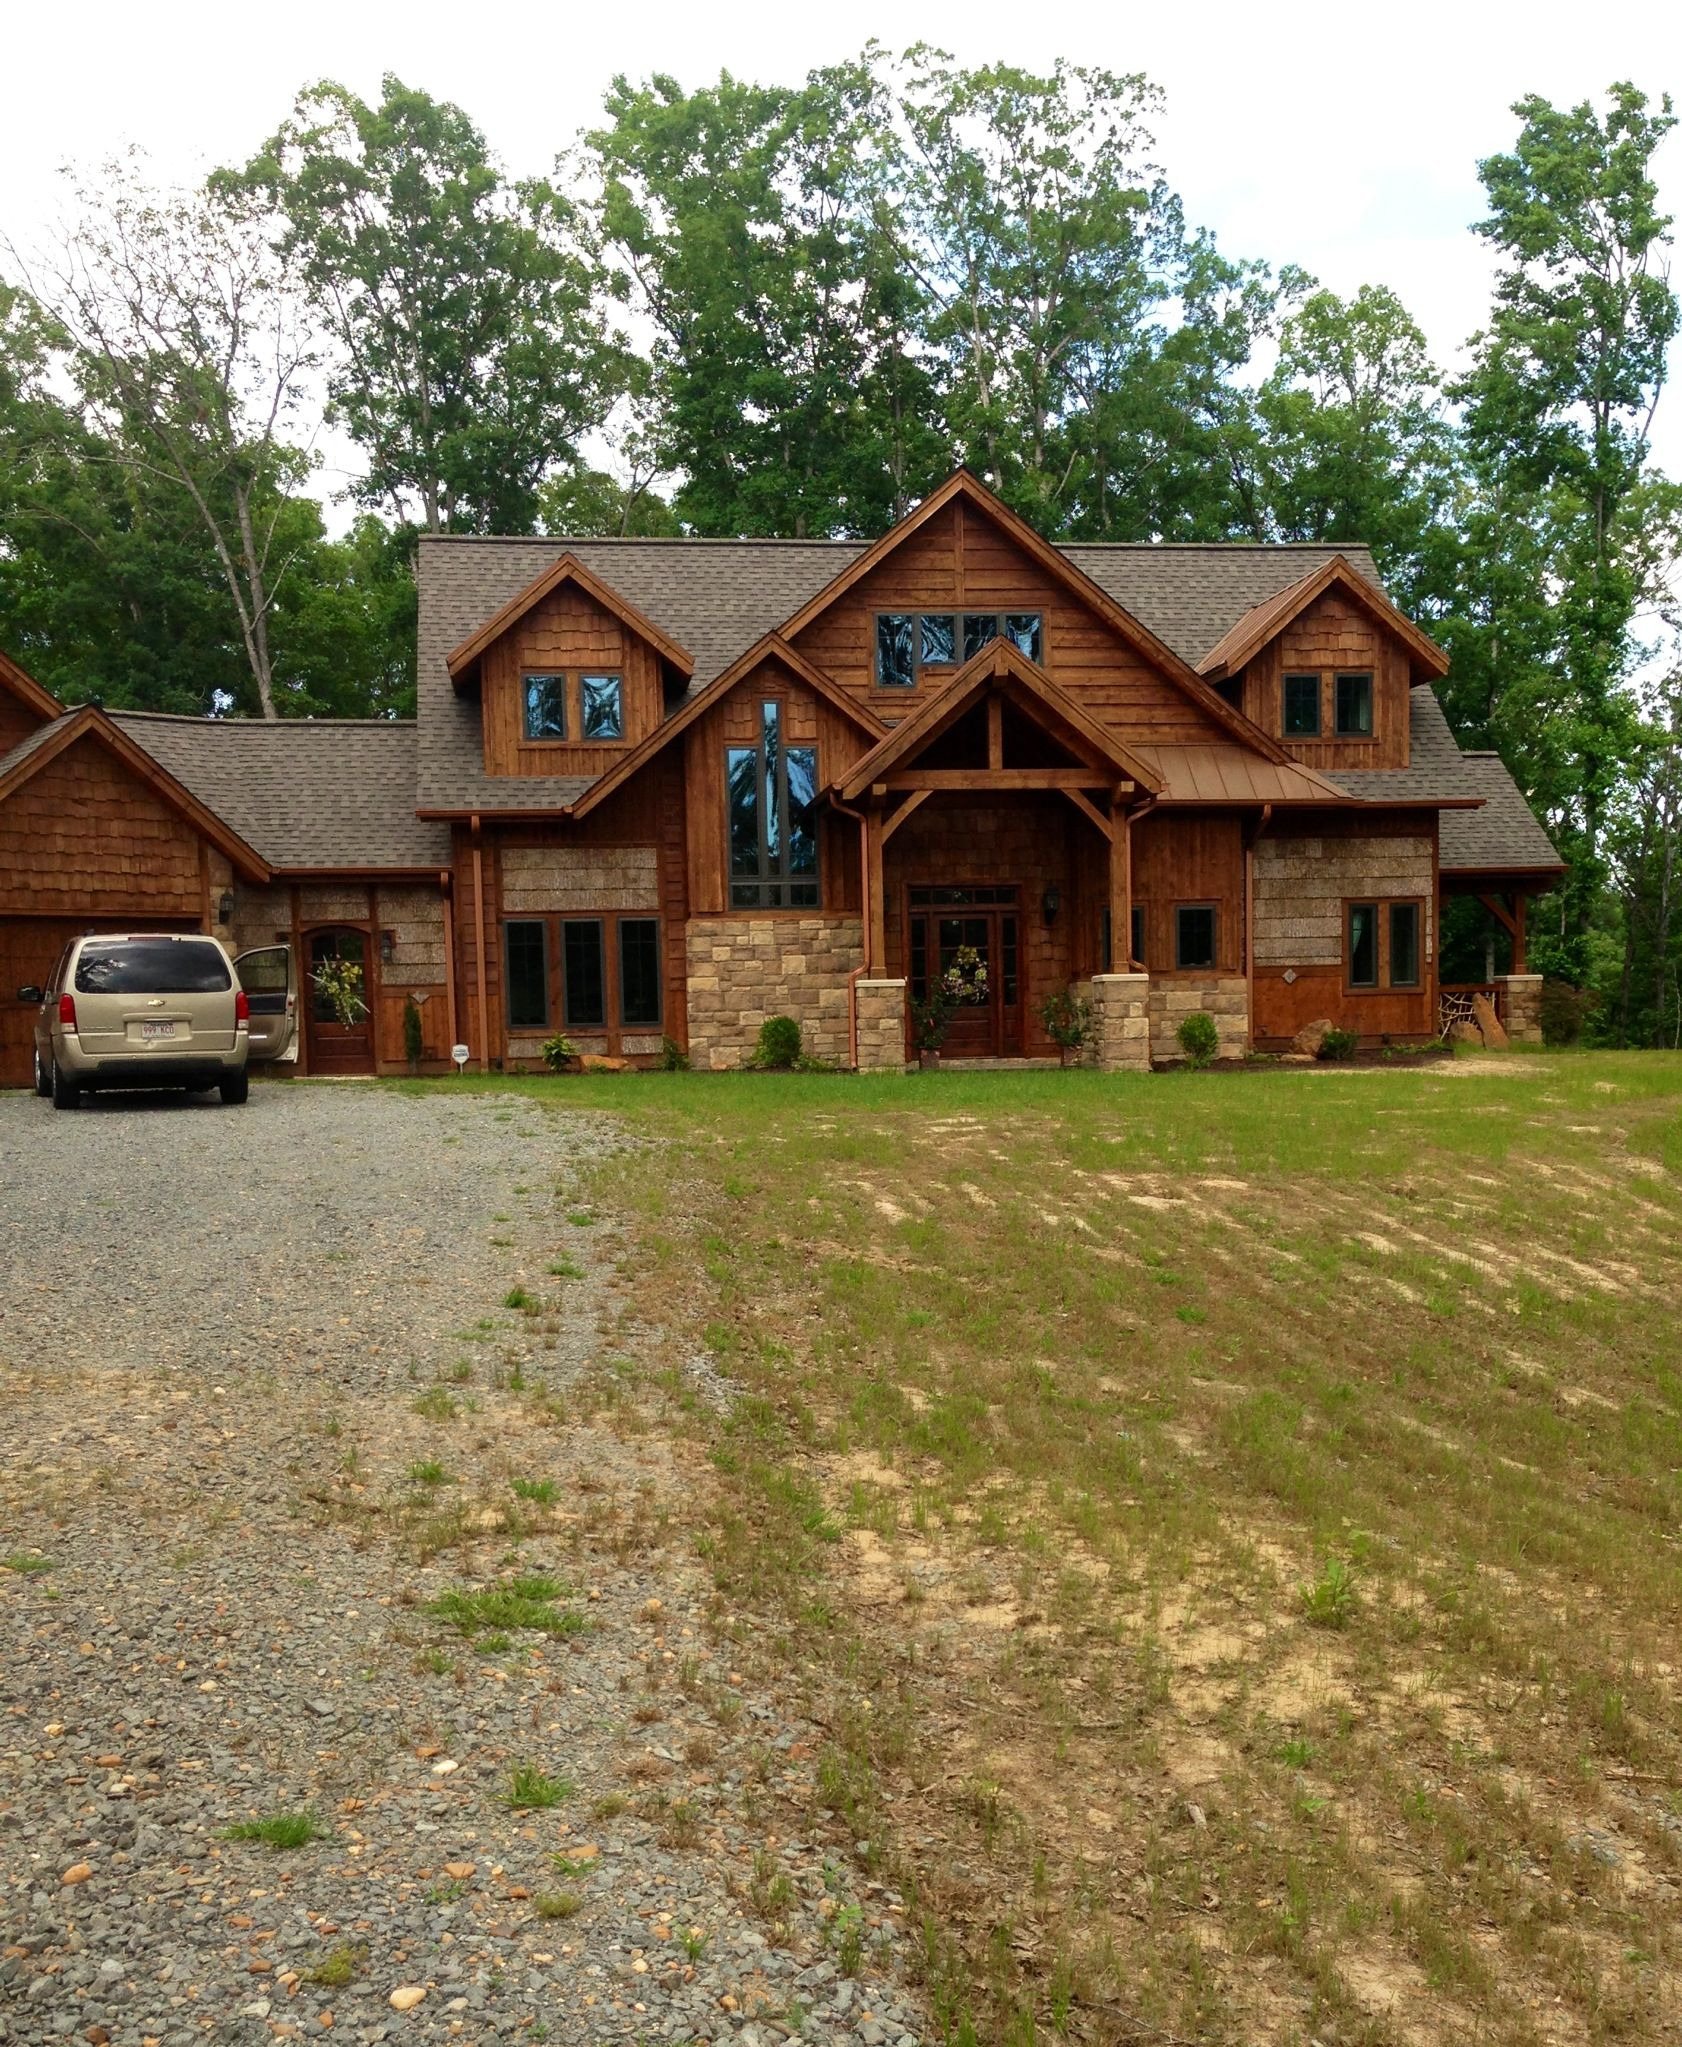 Timber Frame House Plans with Walkout Basement Inspirational Log House